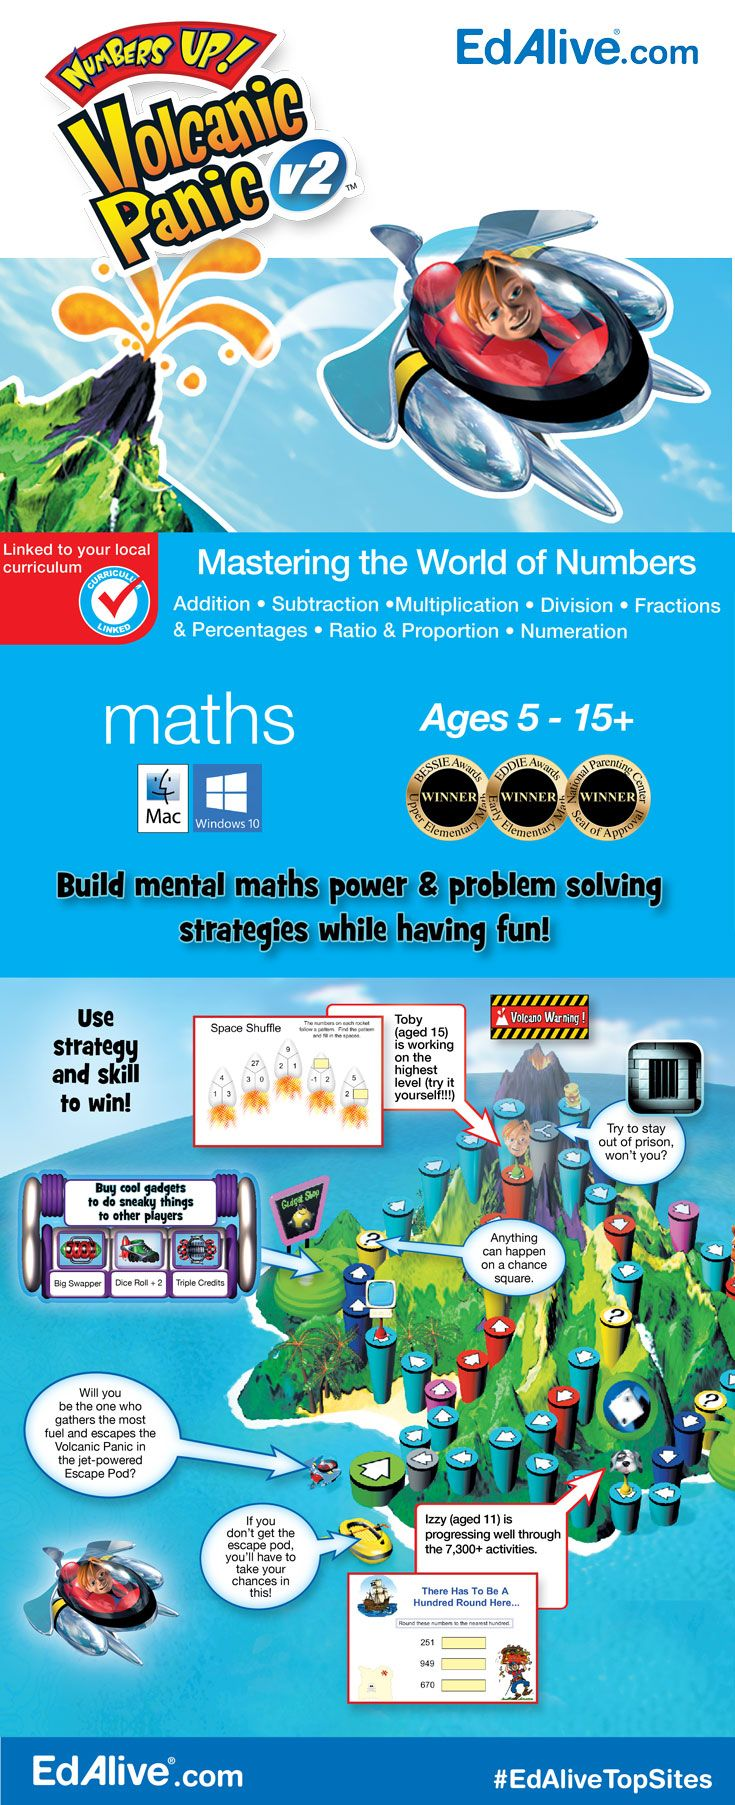 Build mental maths power & problem solving strategies | Master the world of numbers and outwit your competitors in this exciting single and multiplayer game! With powerful diagnostic and reporting capabilities, this curriculum-rich board game adventure will zero in on your child's learning needs. They will master numeration, fractions, percentages, ratio and proportion skills! #Mathematics #EdAliveTopSites